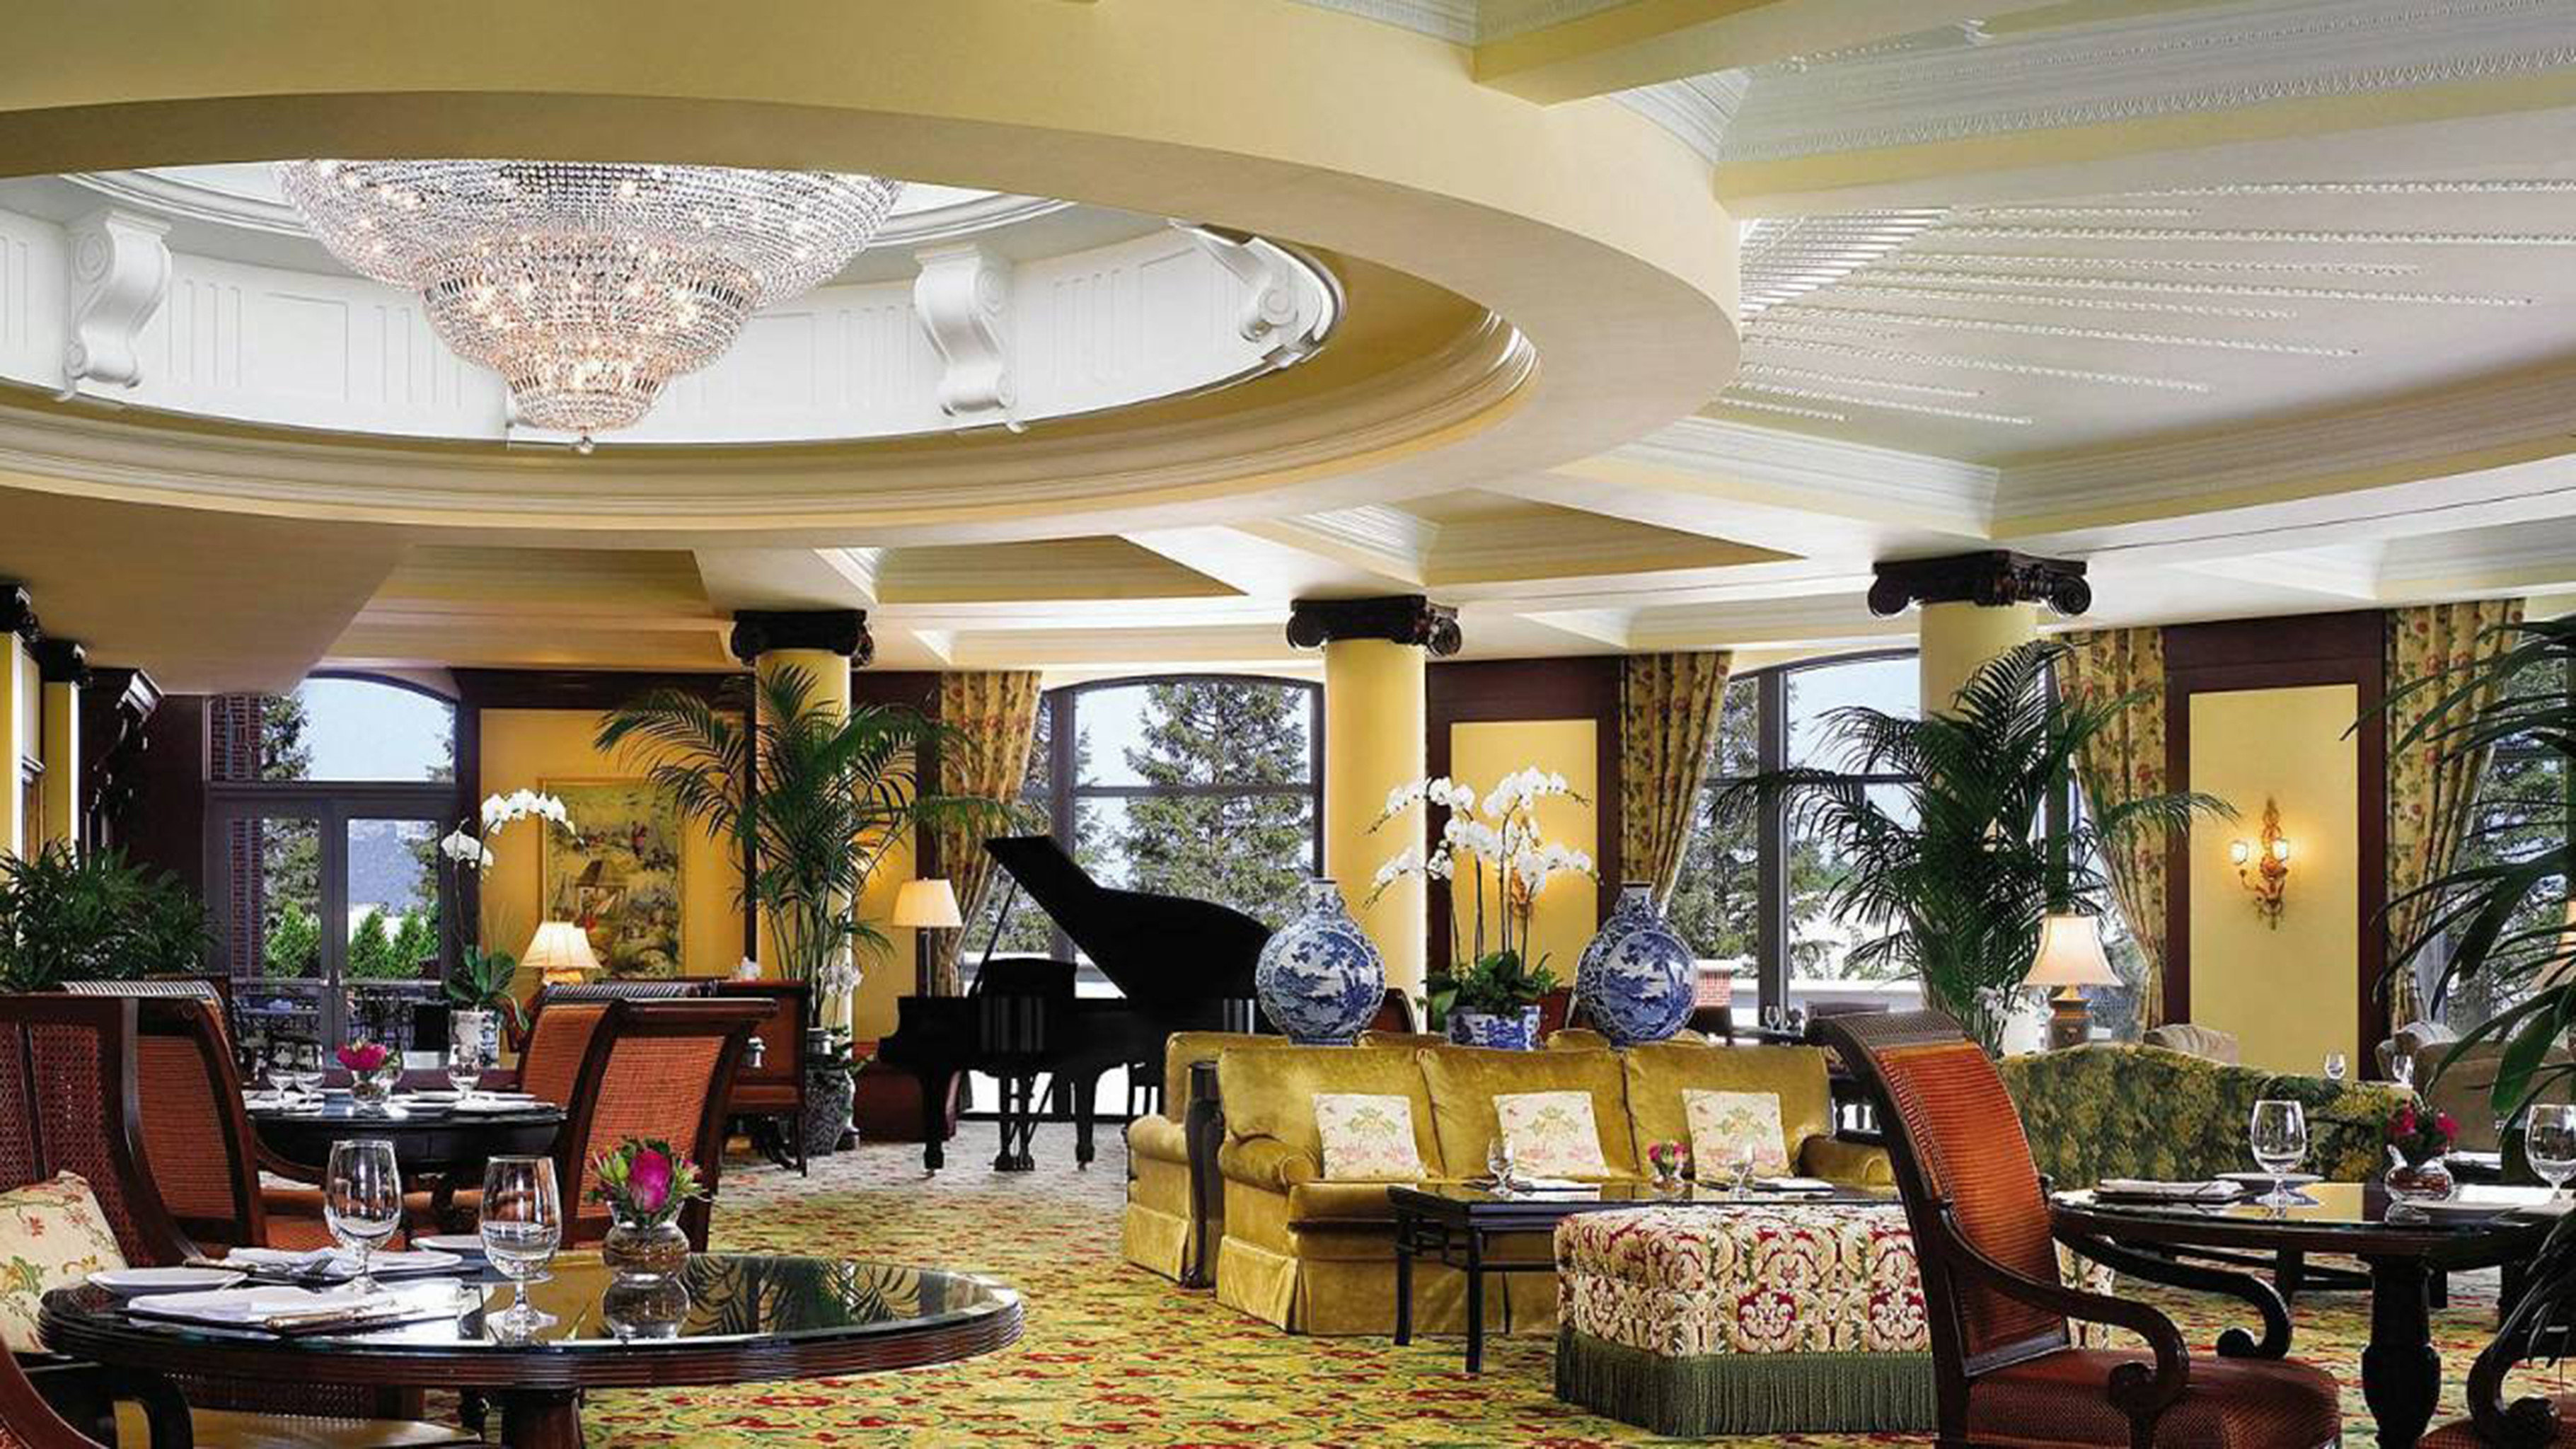 City Classic Dining Drink Eat Elegant Lounge Luxury chair Lobby property restaurant function hall mansion palace Resort arranged dining table